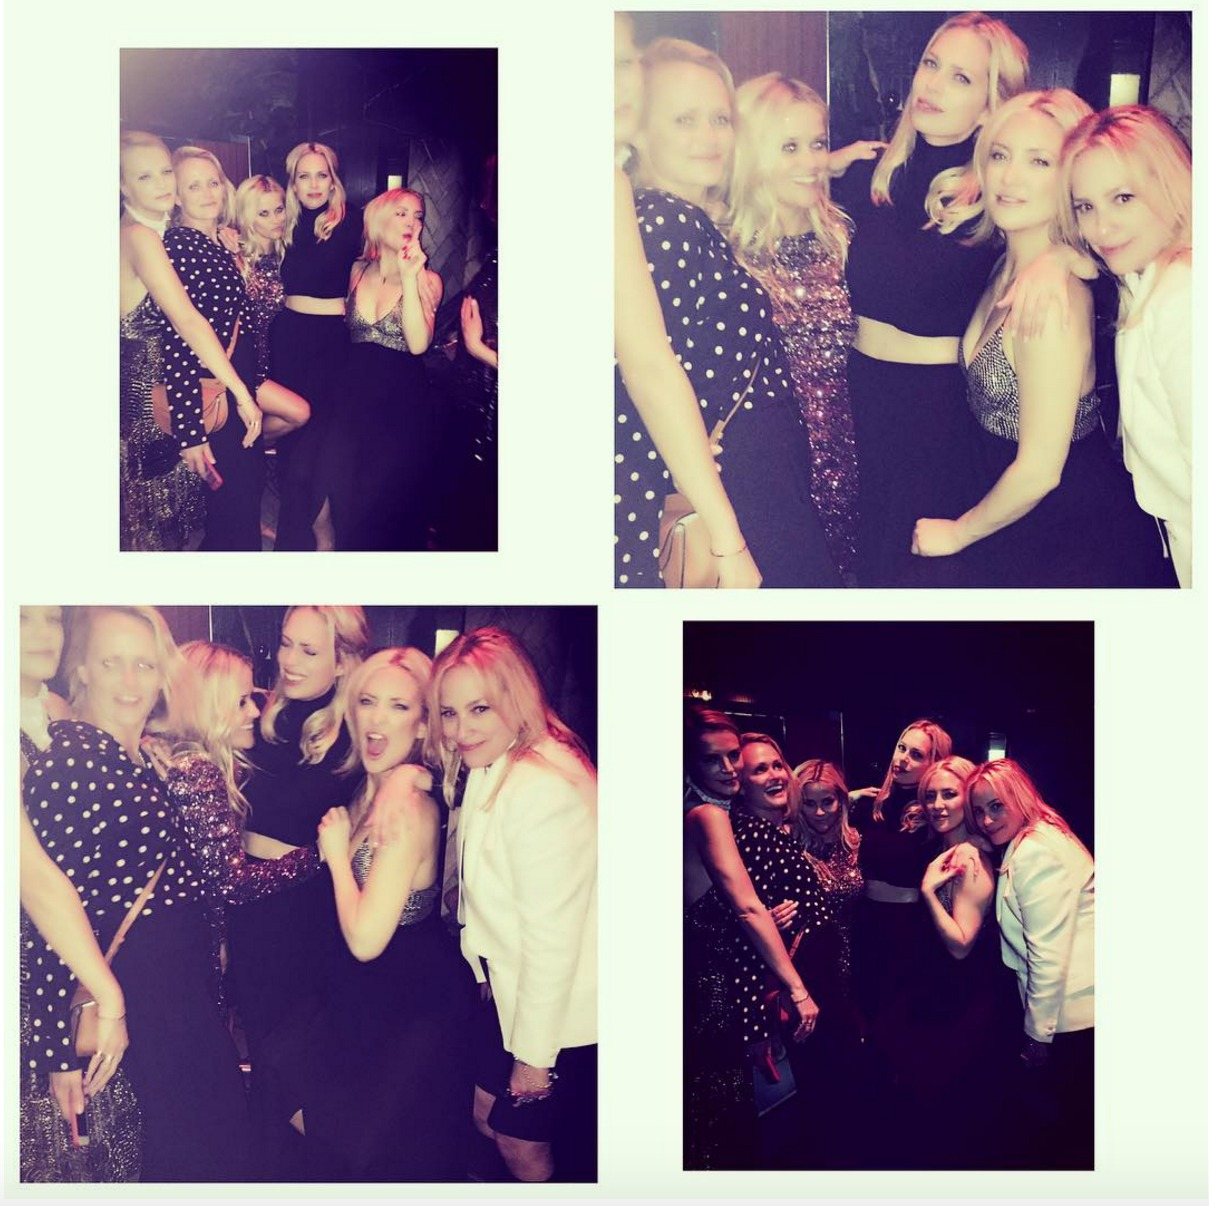 Kate Hudson shares a photo collage from pal Reese Witherspoon's 40th birthday party on March 19, 2016